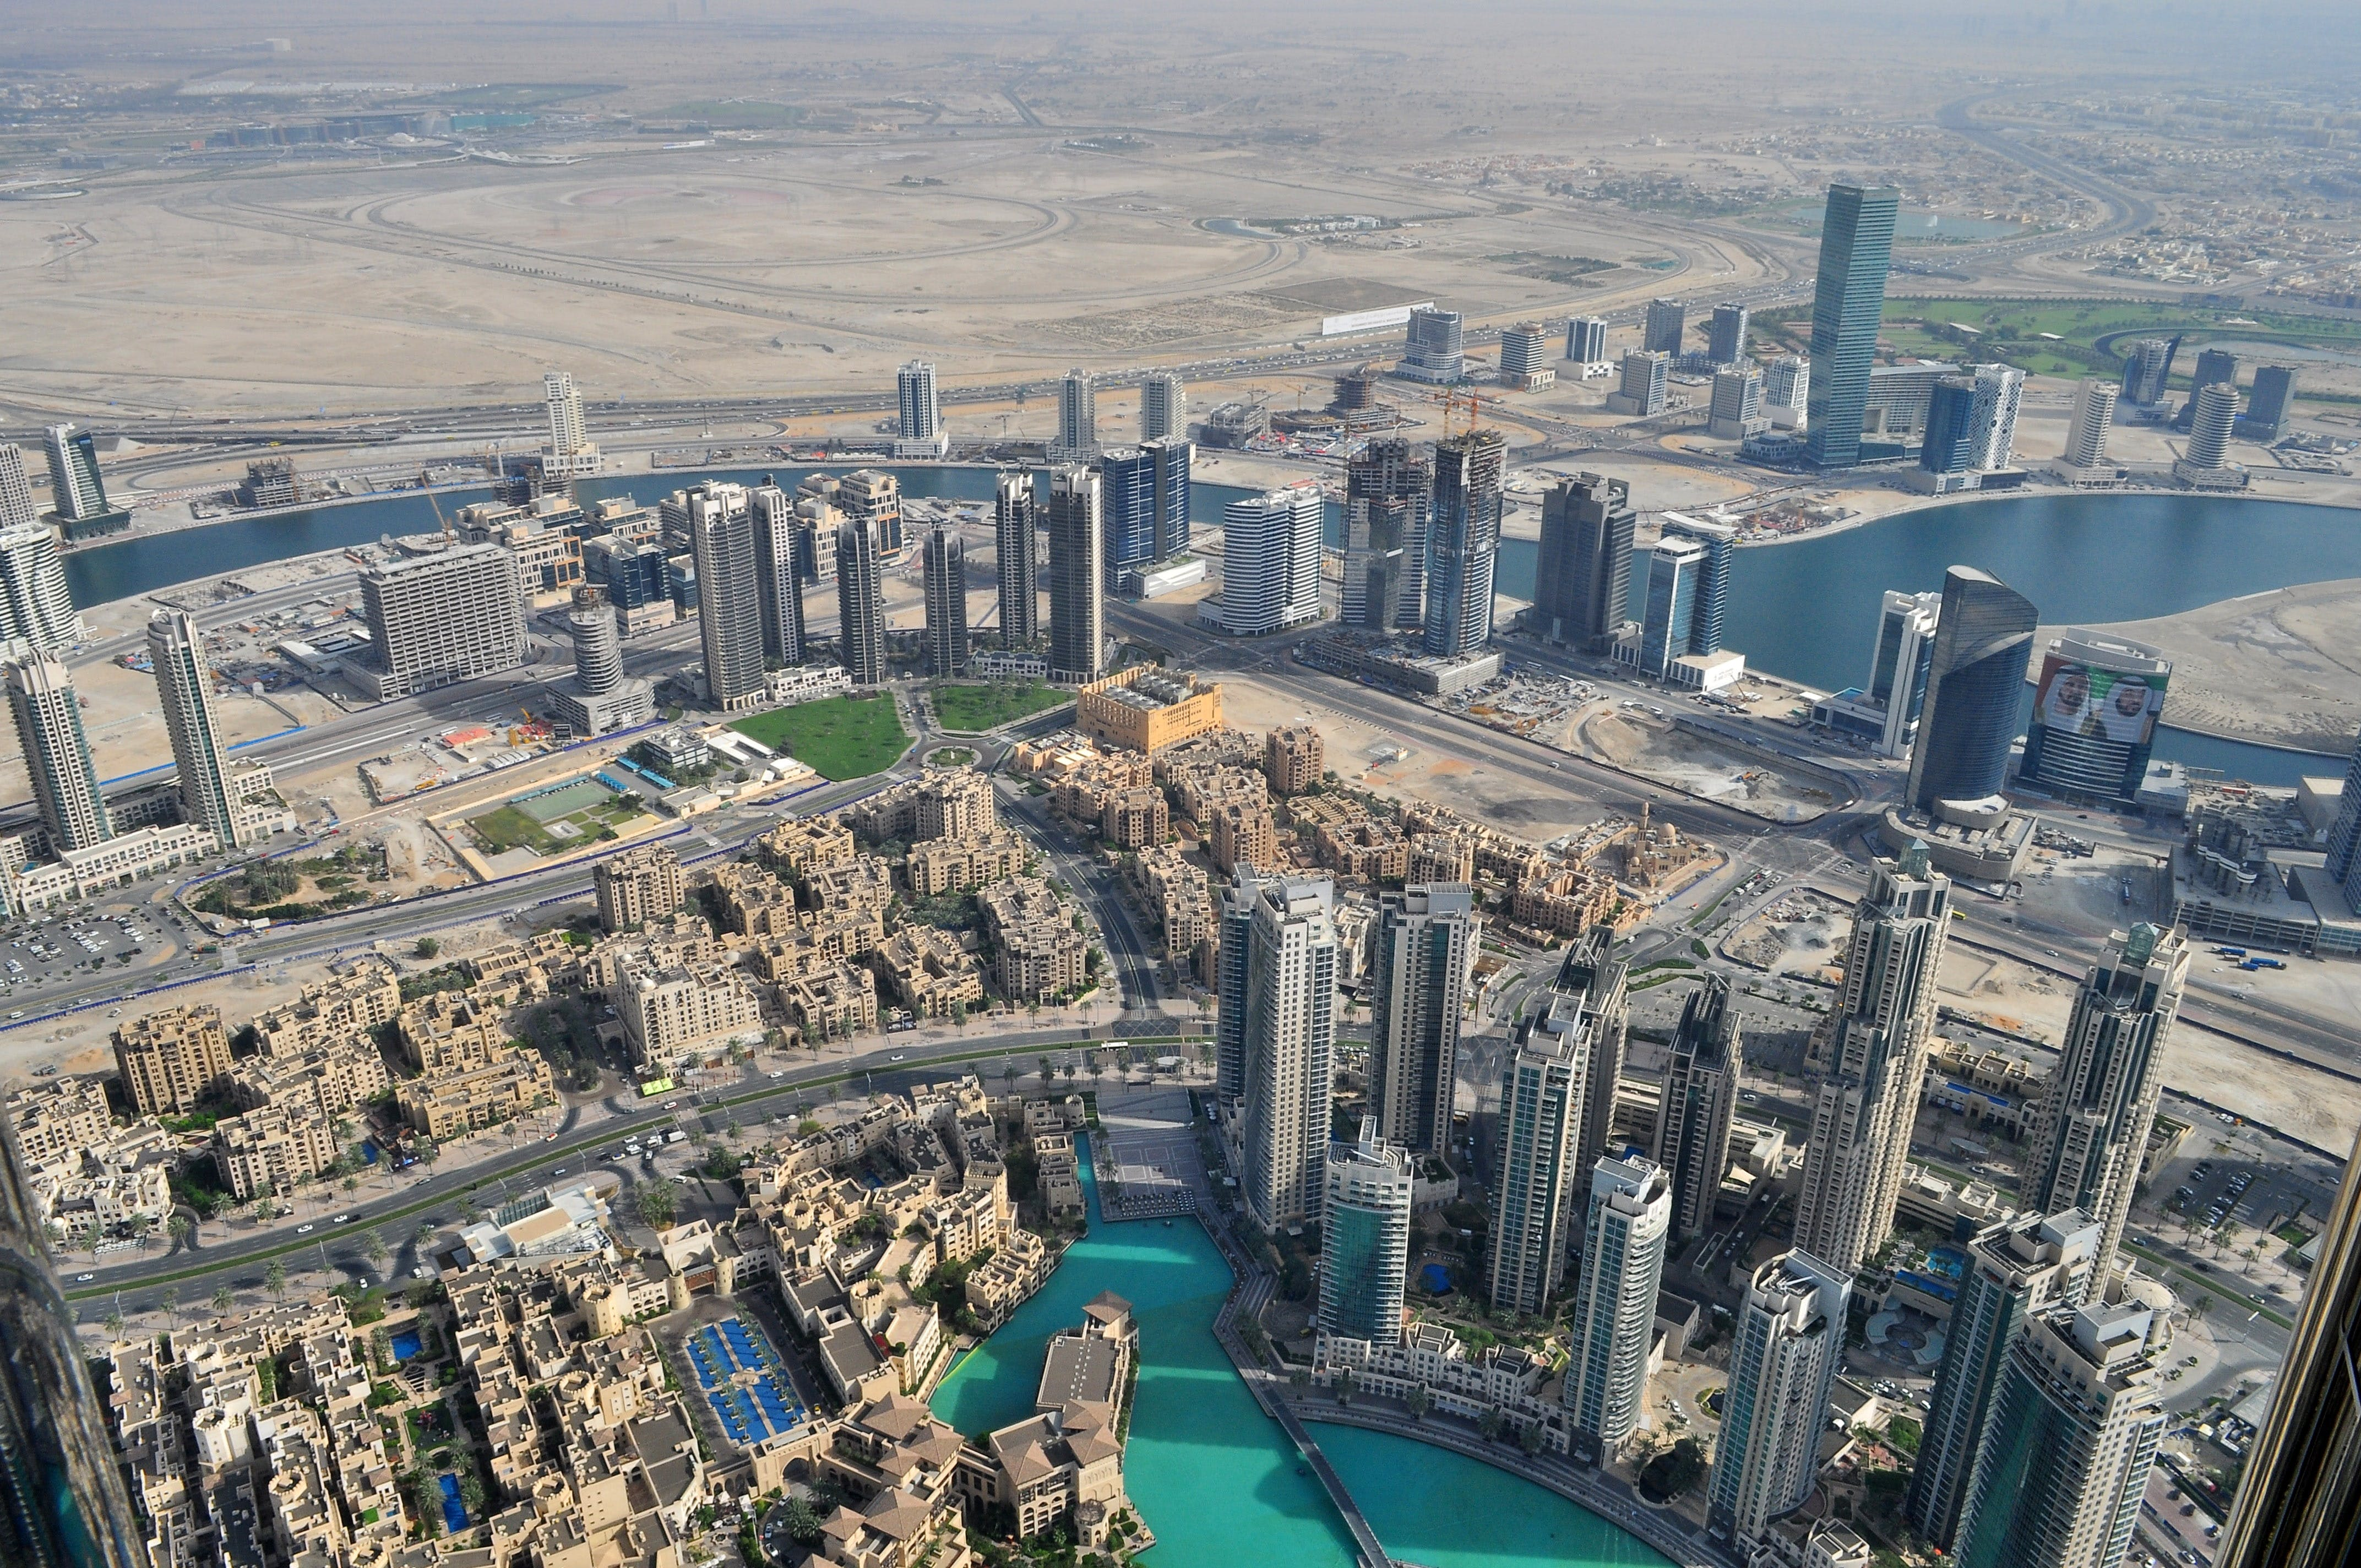 Dubai aims for one-quarter of its buildings to be 3D printed by